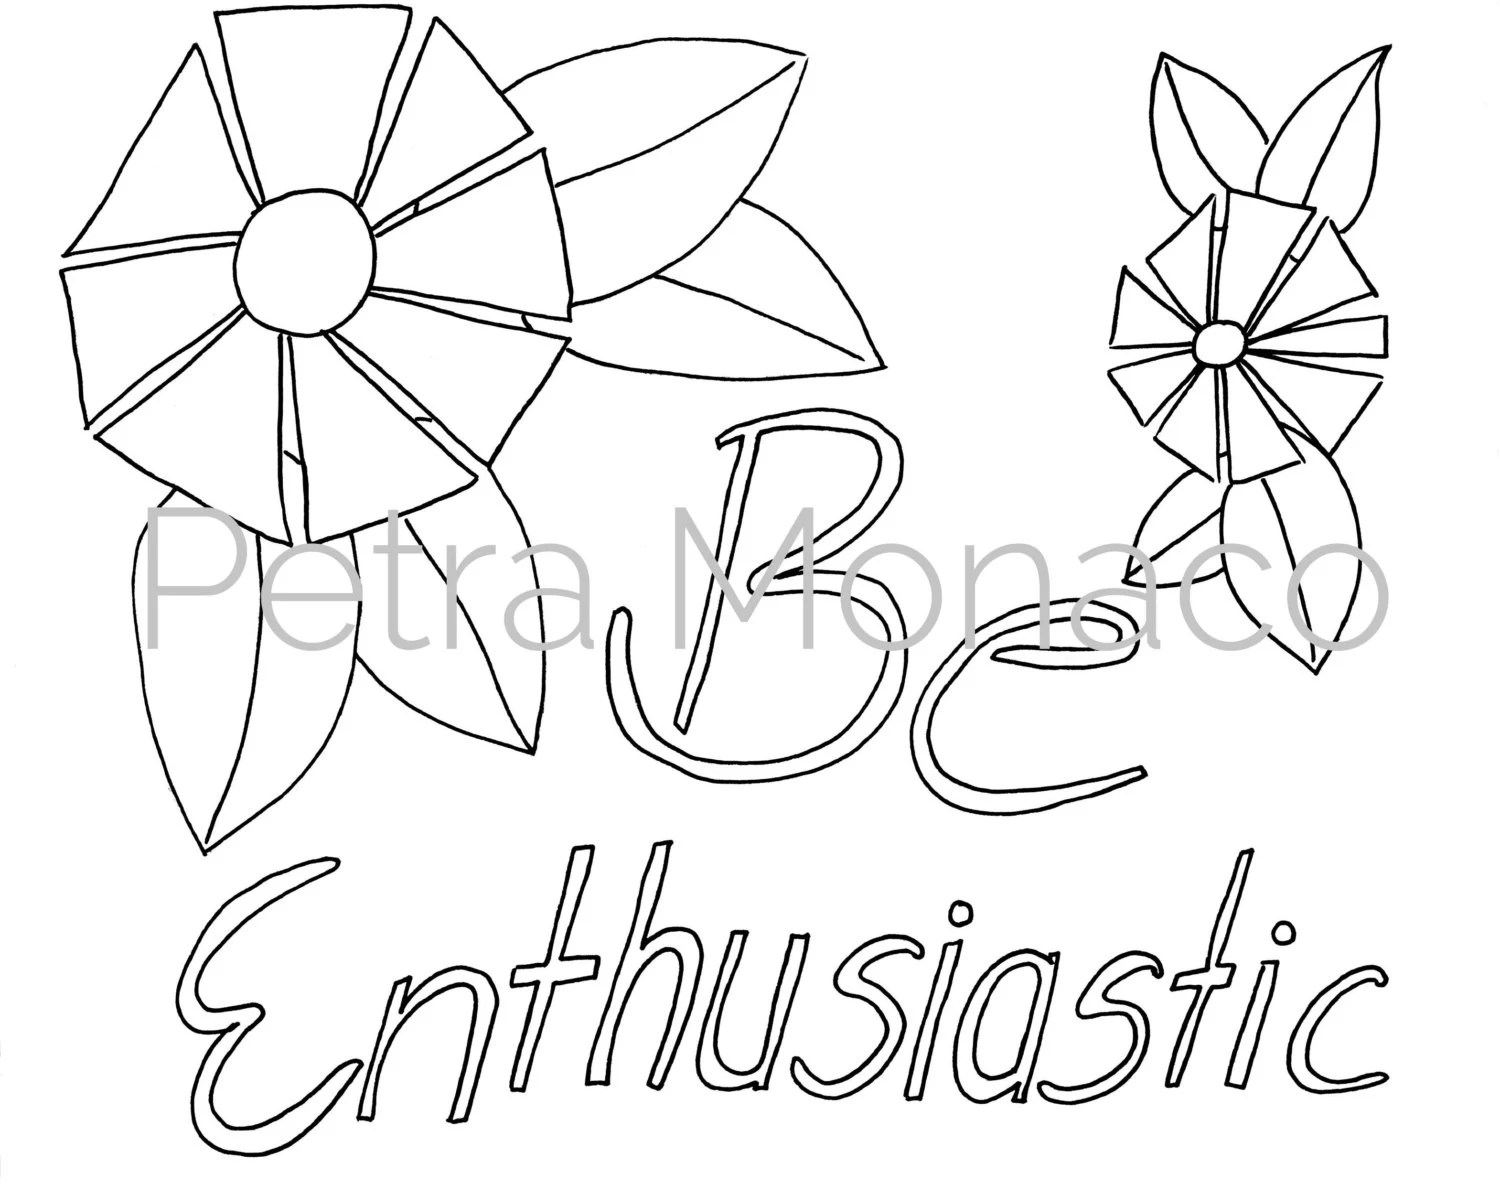 Be Enthusiastic Printable Affirmation Coloring Page